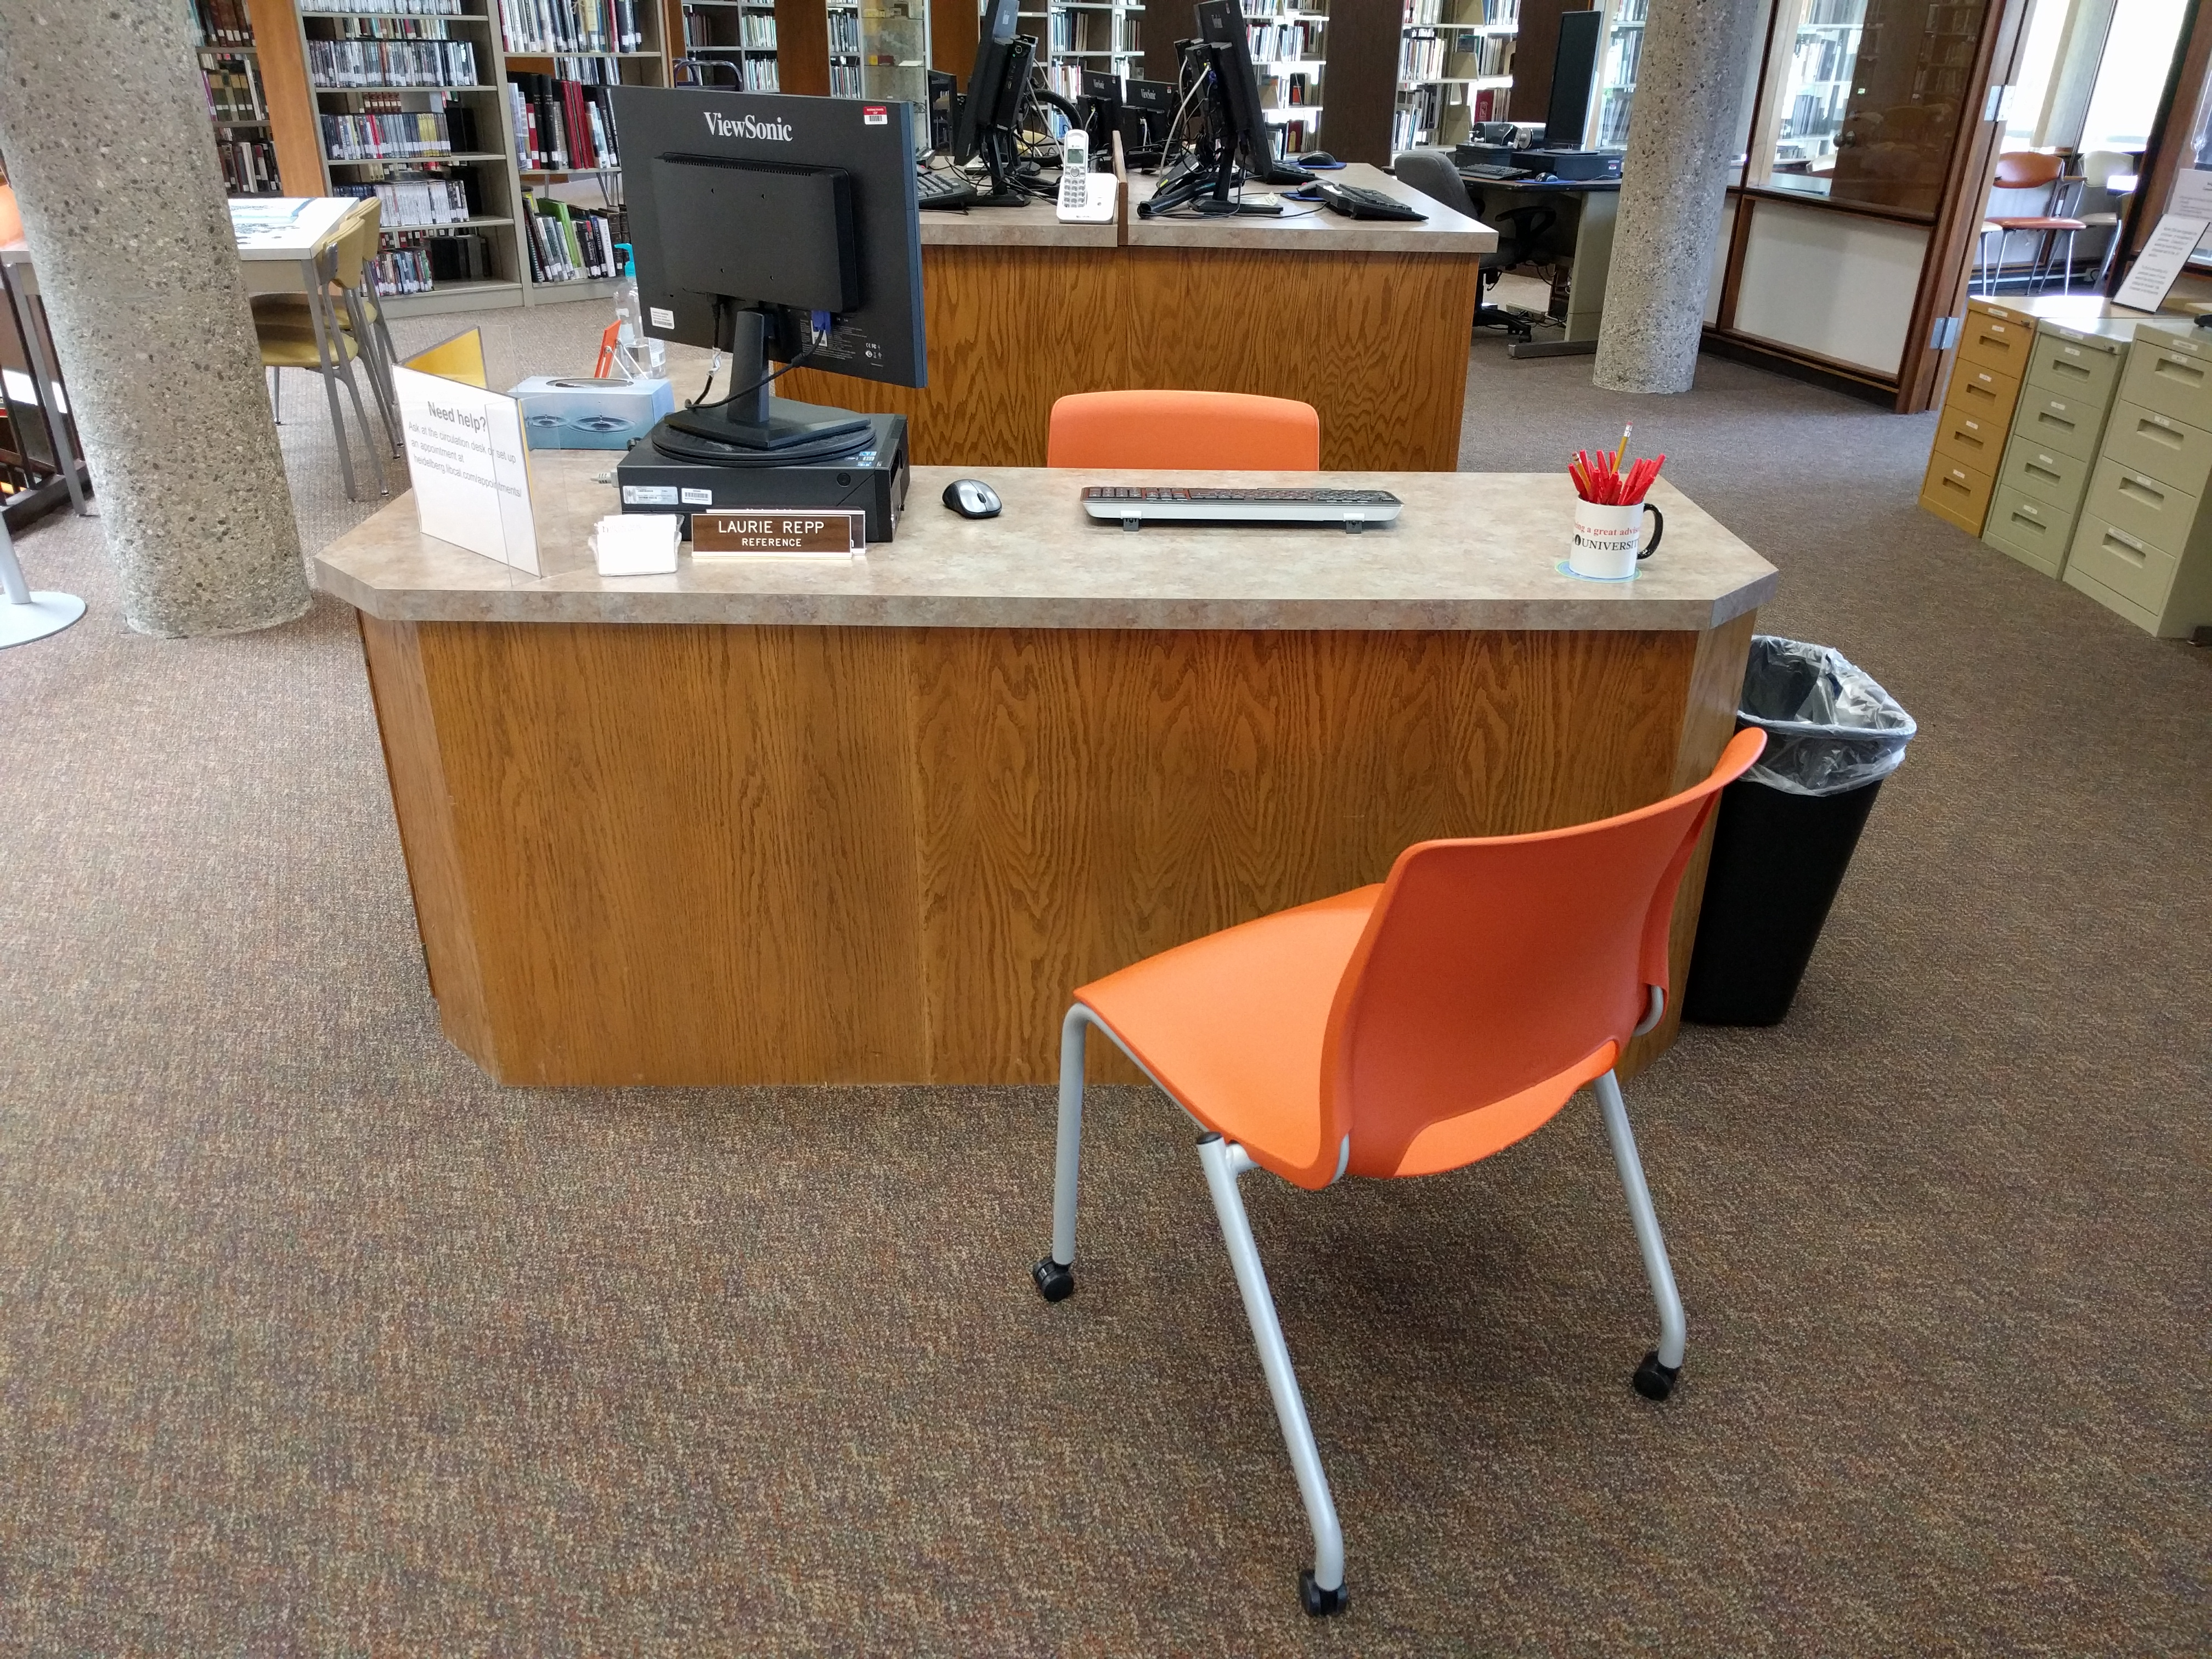 Image of the reference desk